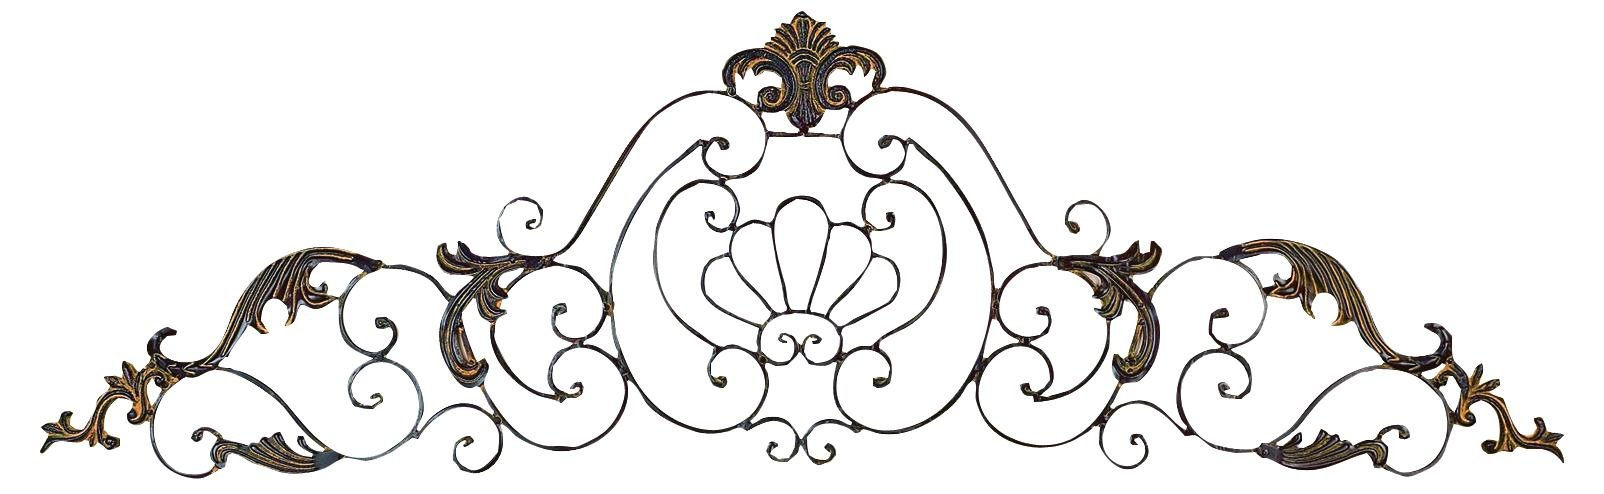 Deco 79 81380 Crown Iron Scroll Wall Decorative Sculpture